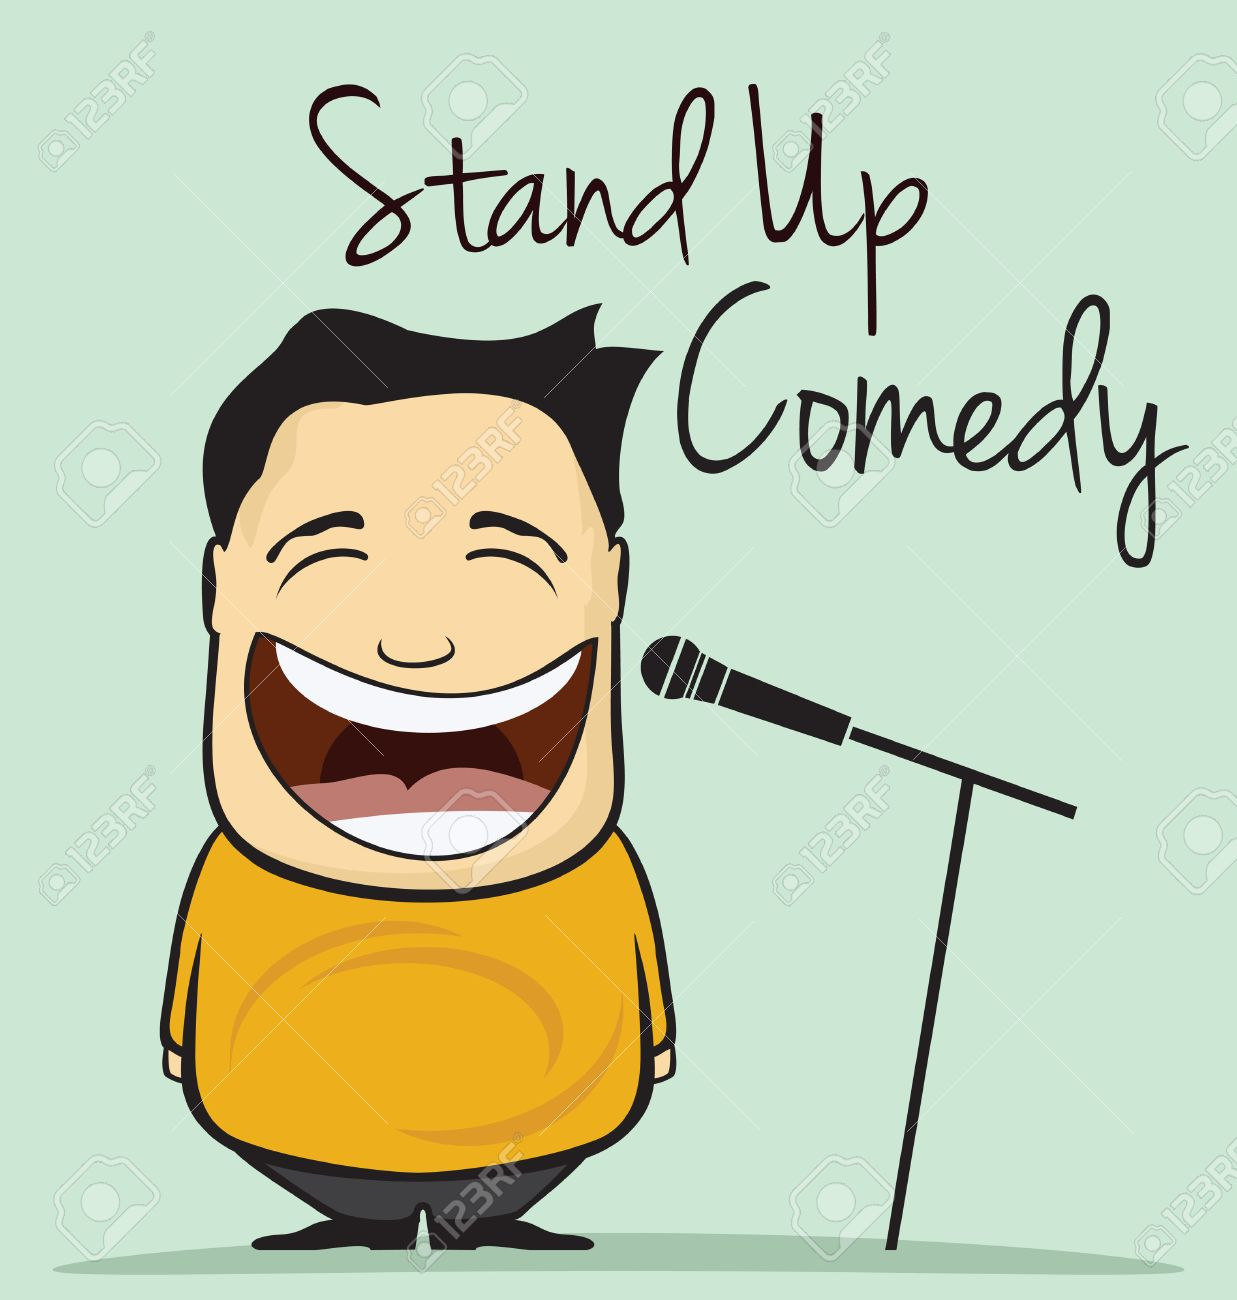 Stand up comedy vector illustration - 41261225